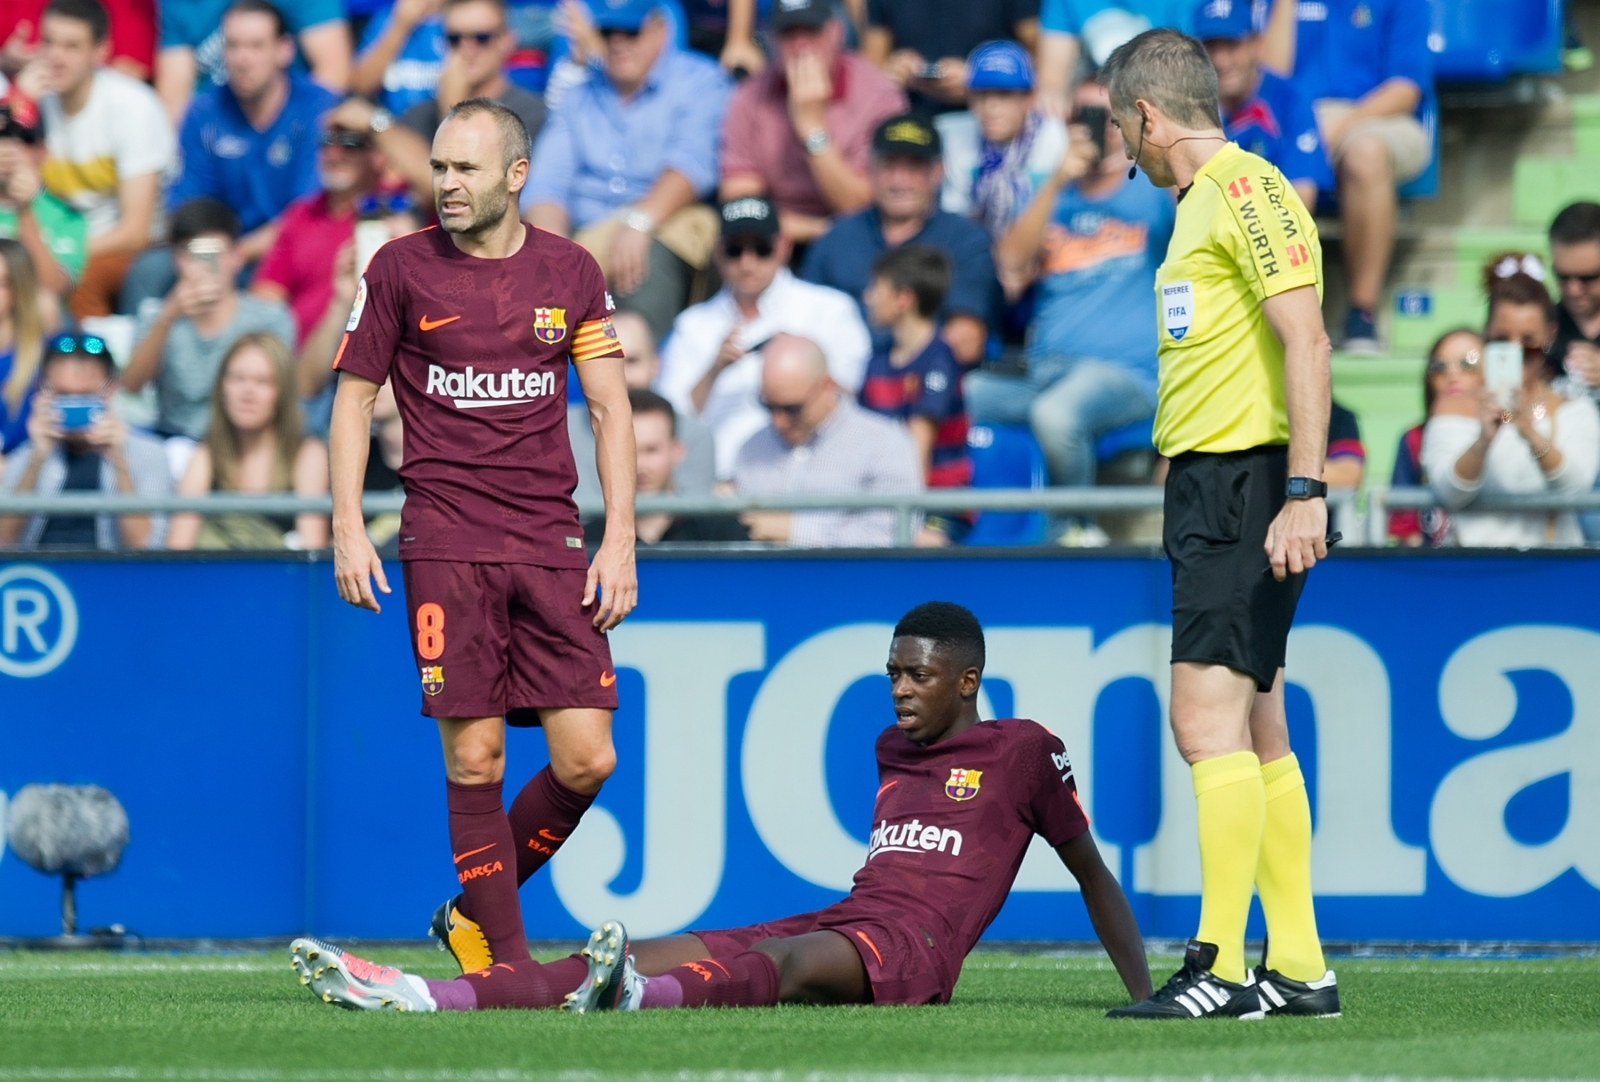 Andres Iniesta and Ousmane Dembele